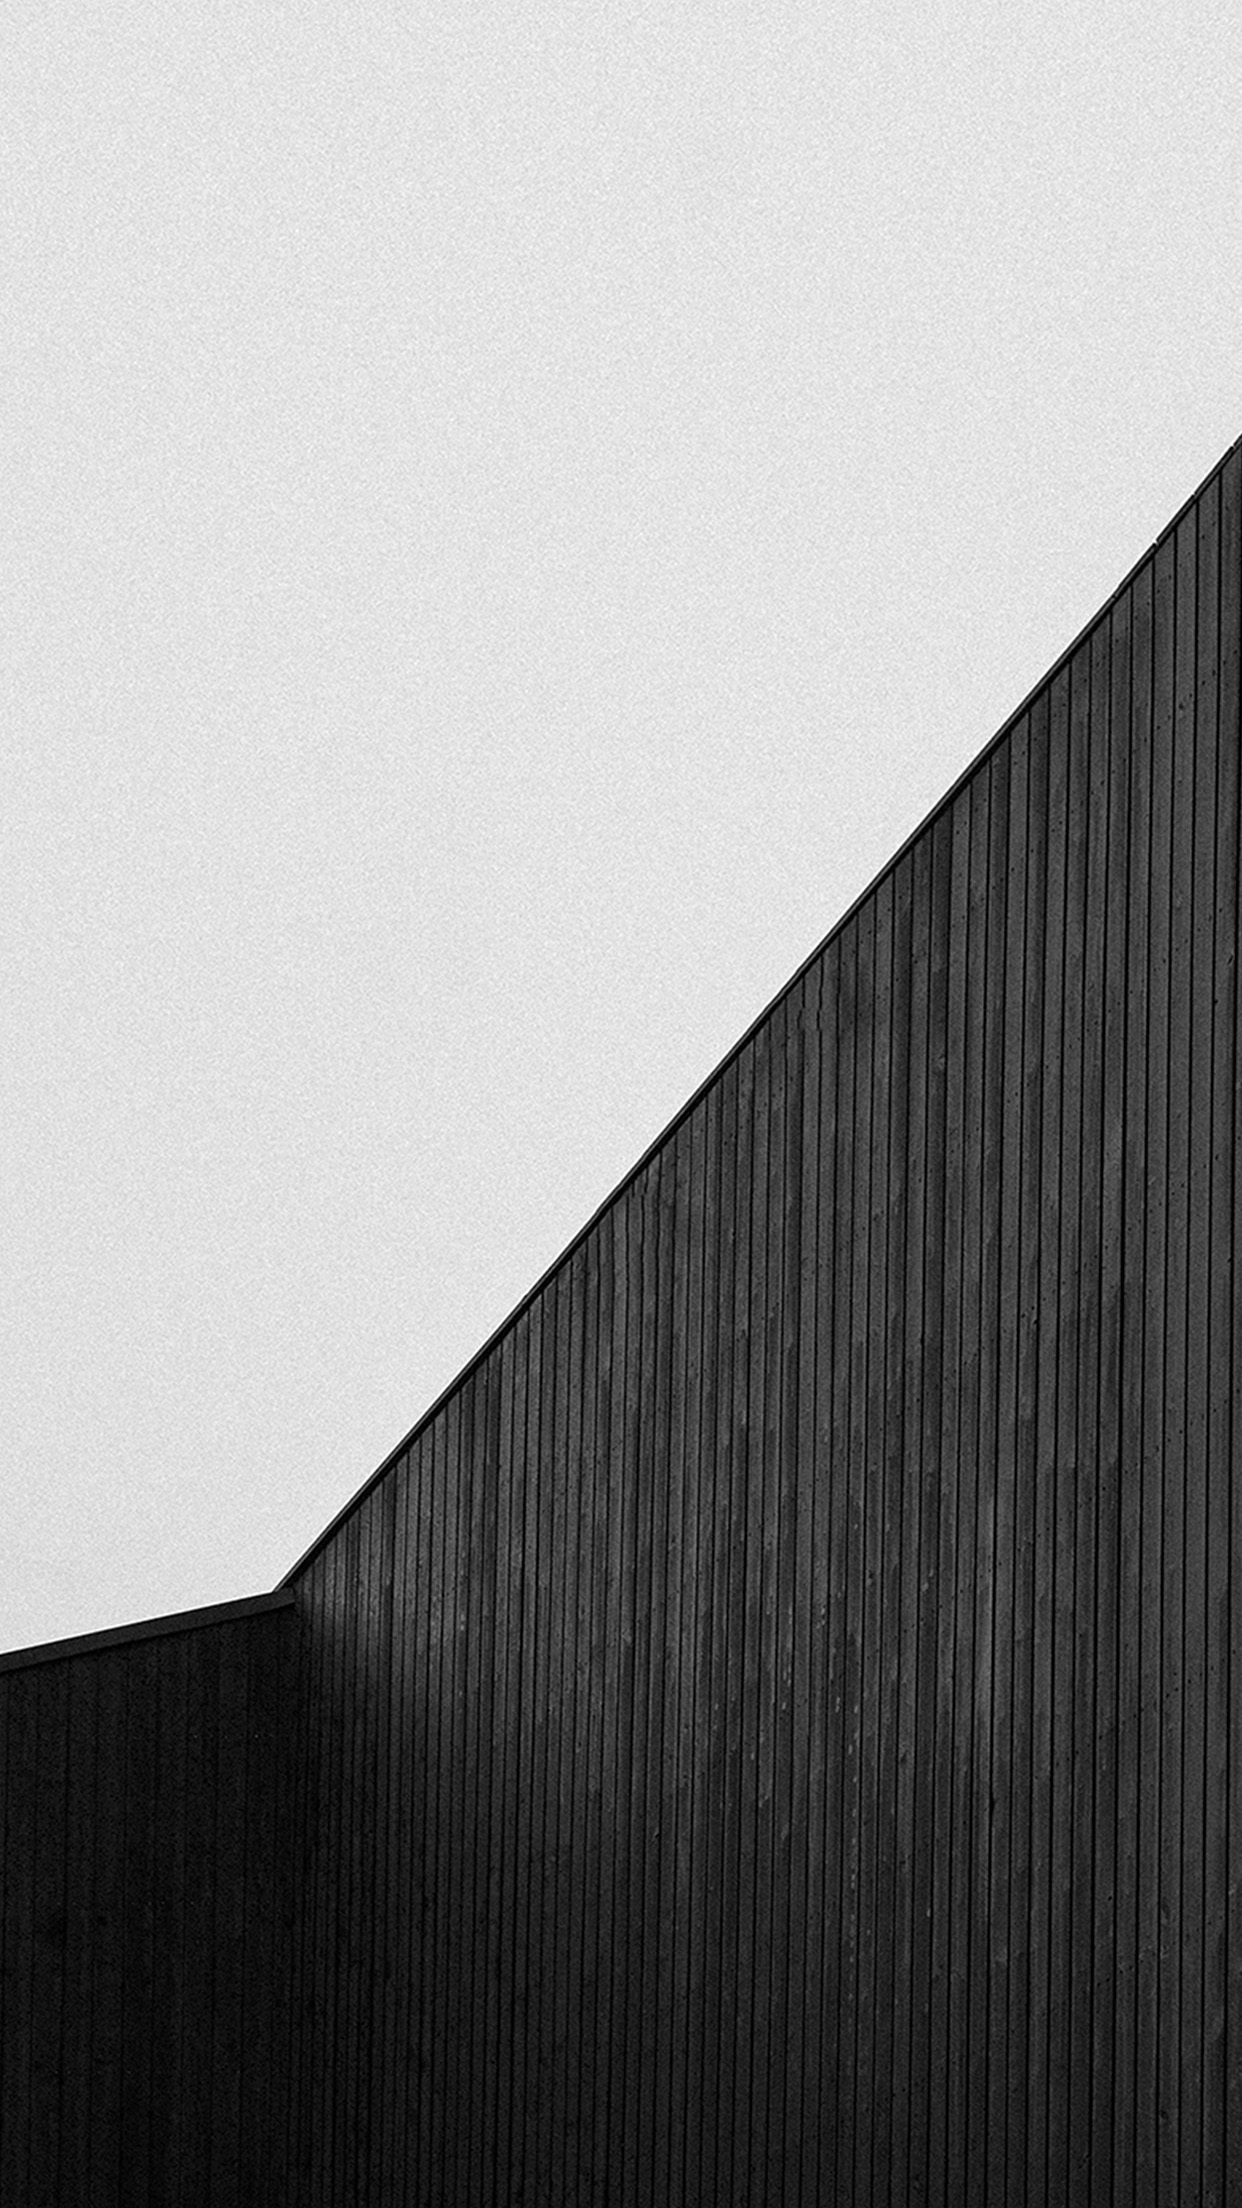 Vz02 Simple Wall Bw Dark Pattern Background Wallpaper